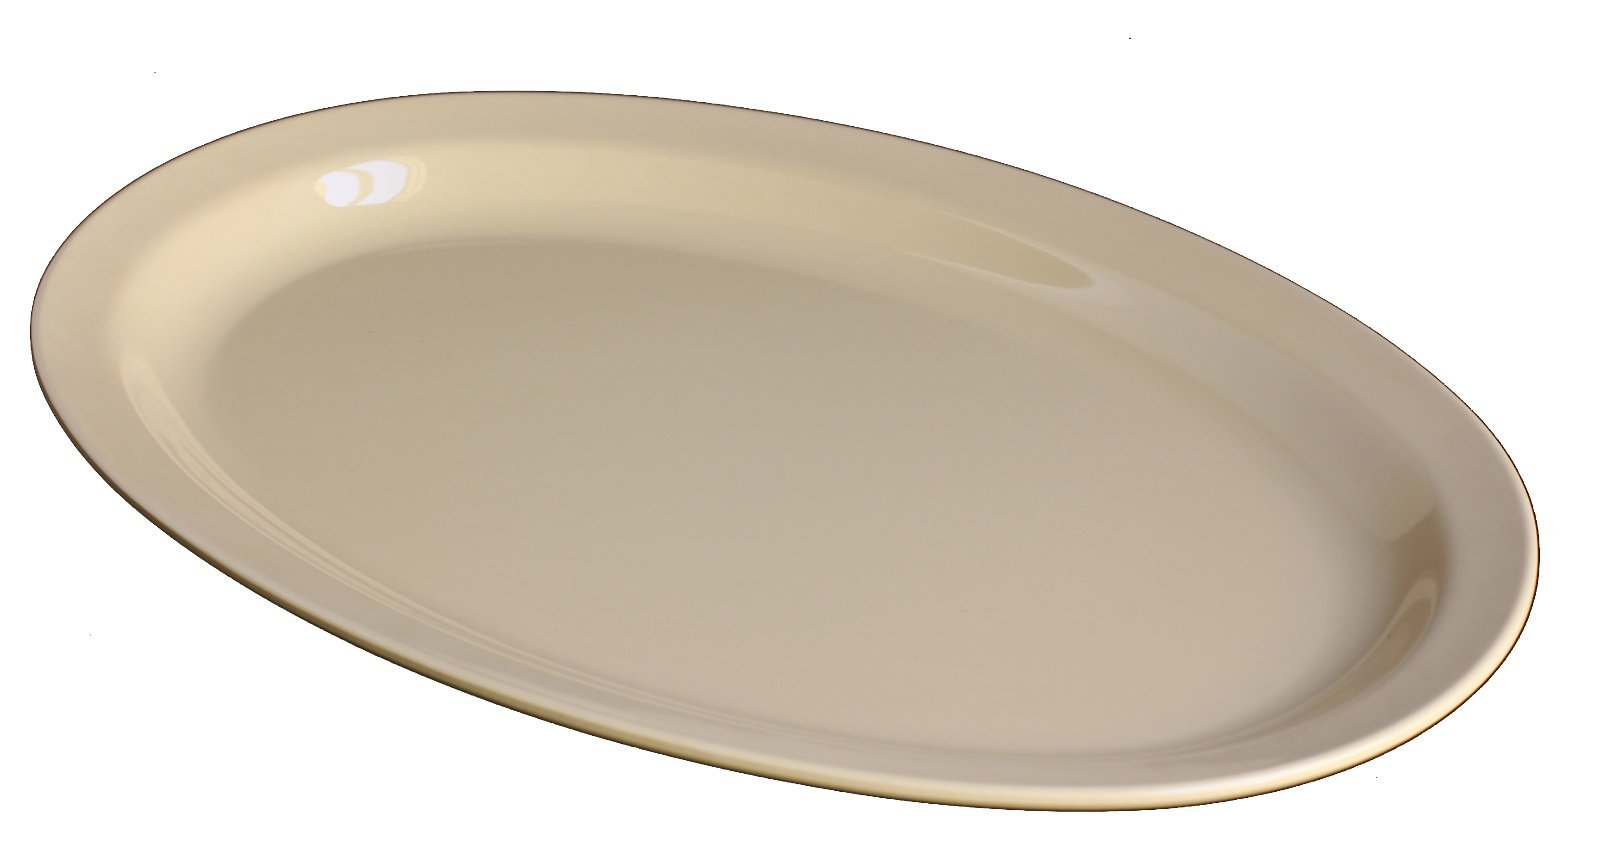 Z-Moments Western Melamine Oval Plates Narrow Rim Platter, 11-1/2'' X 8'', White or Tan #512 (24, Tan)